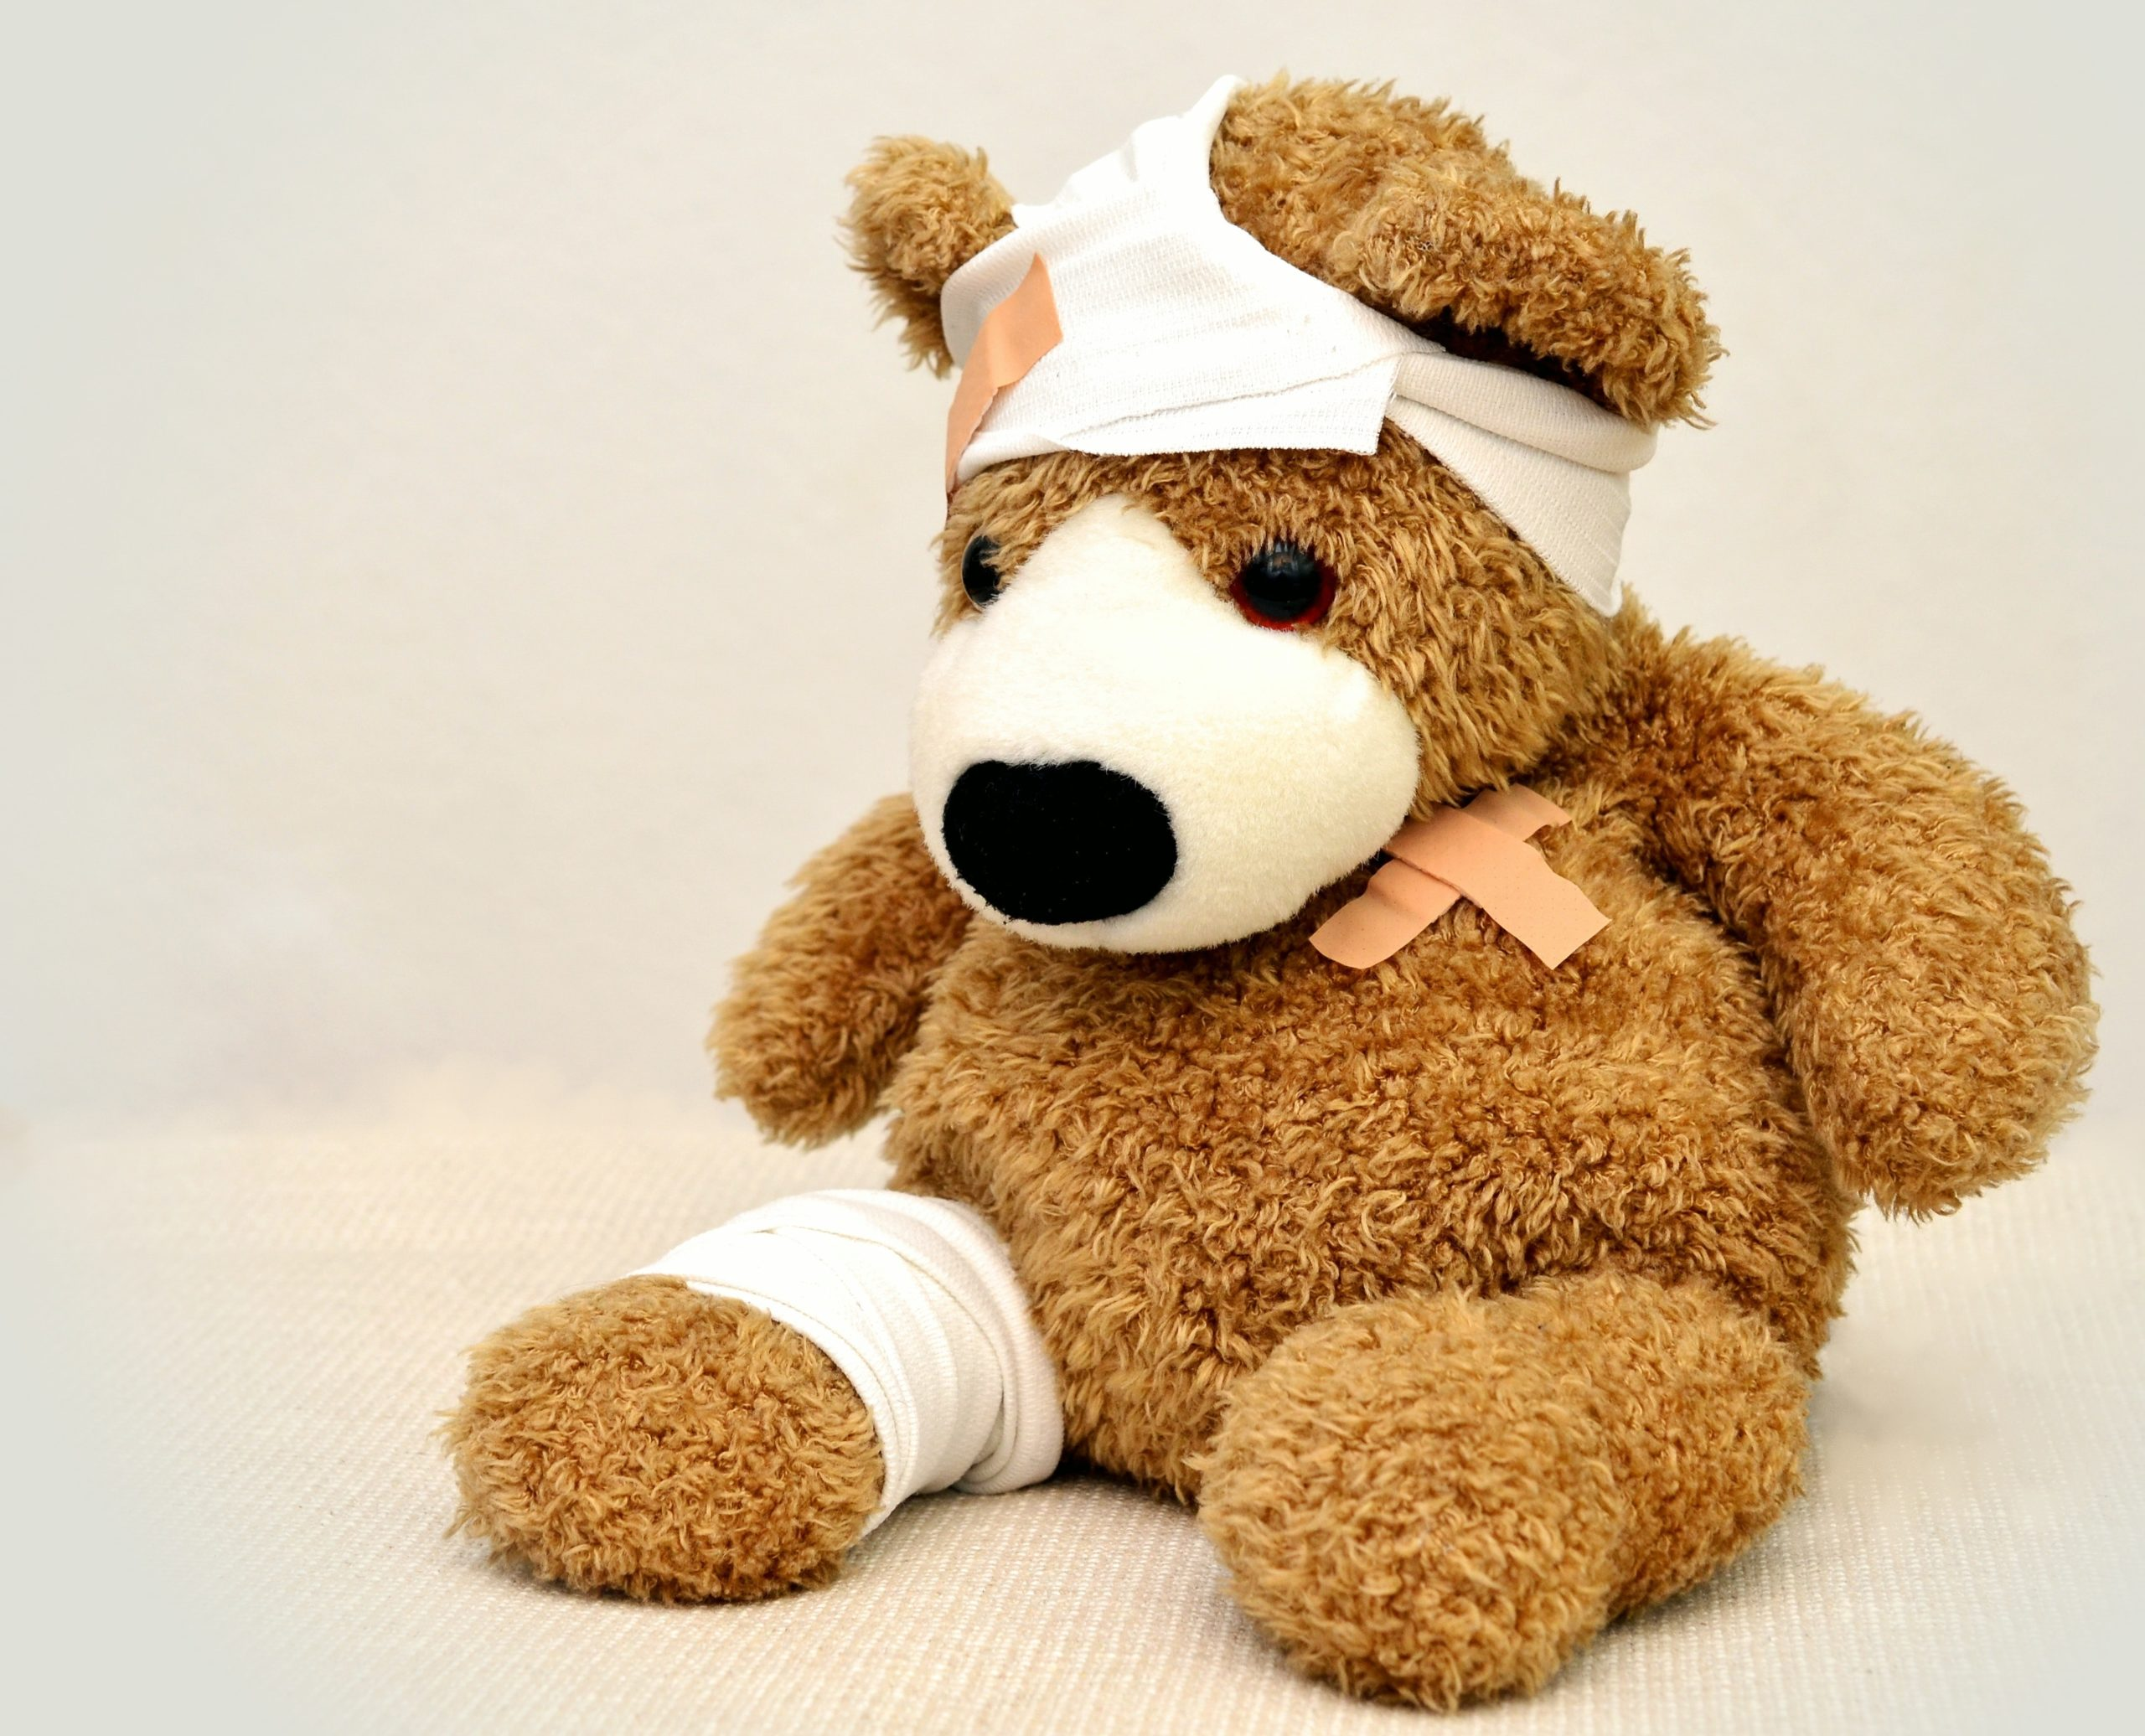 A light brown fuzzy teddy bear has wrappings and bandages on his left, over his heart, and around his head, as if he